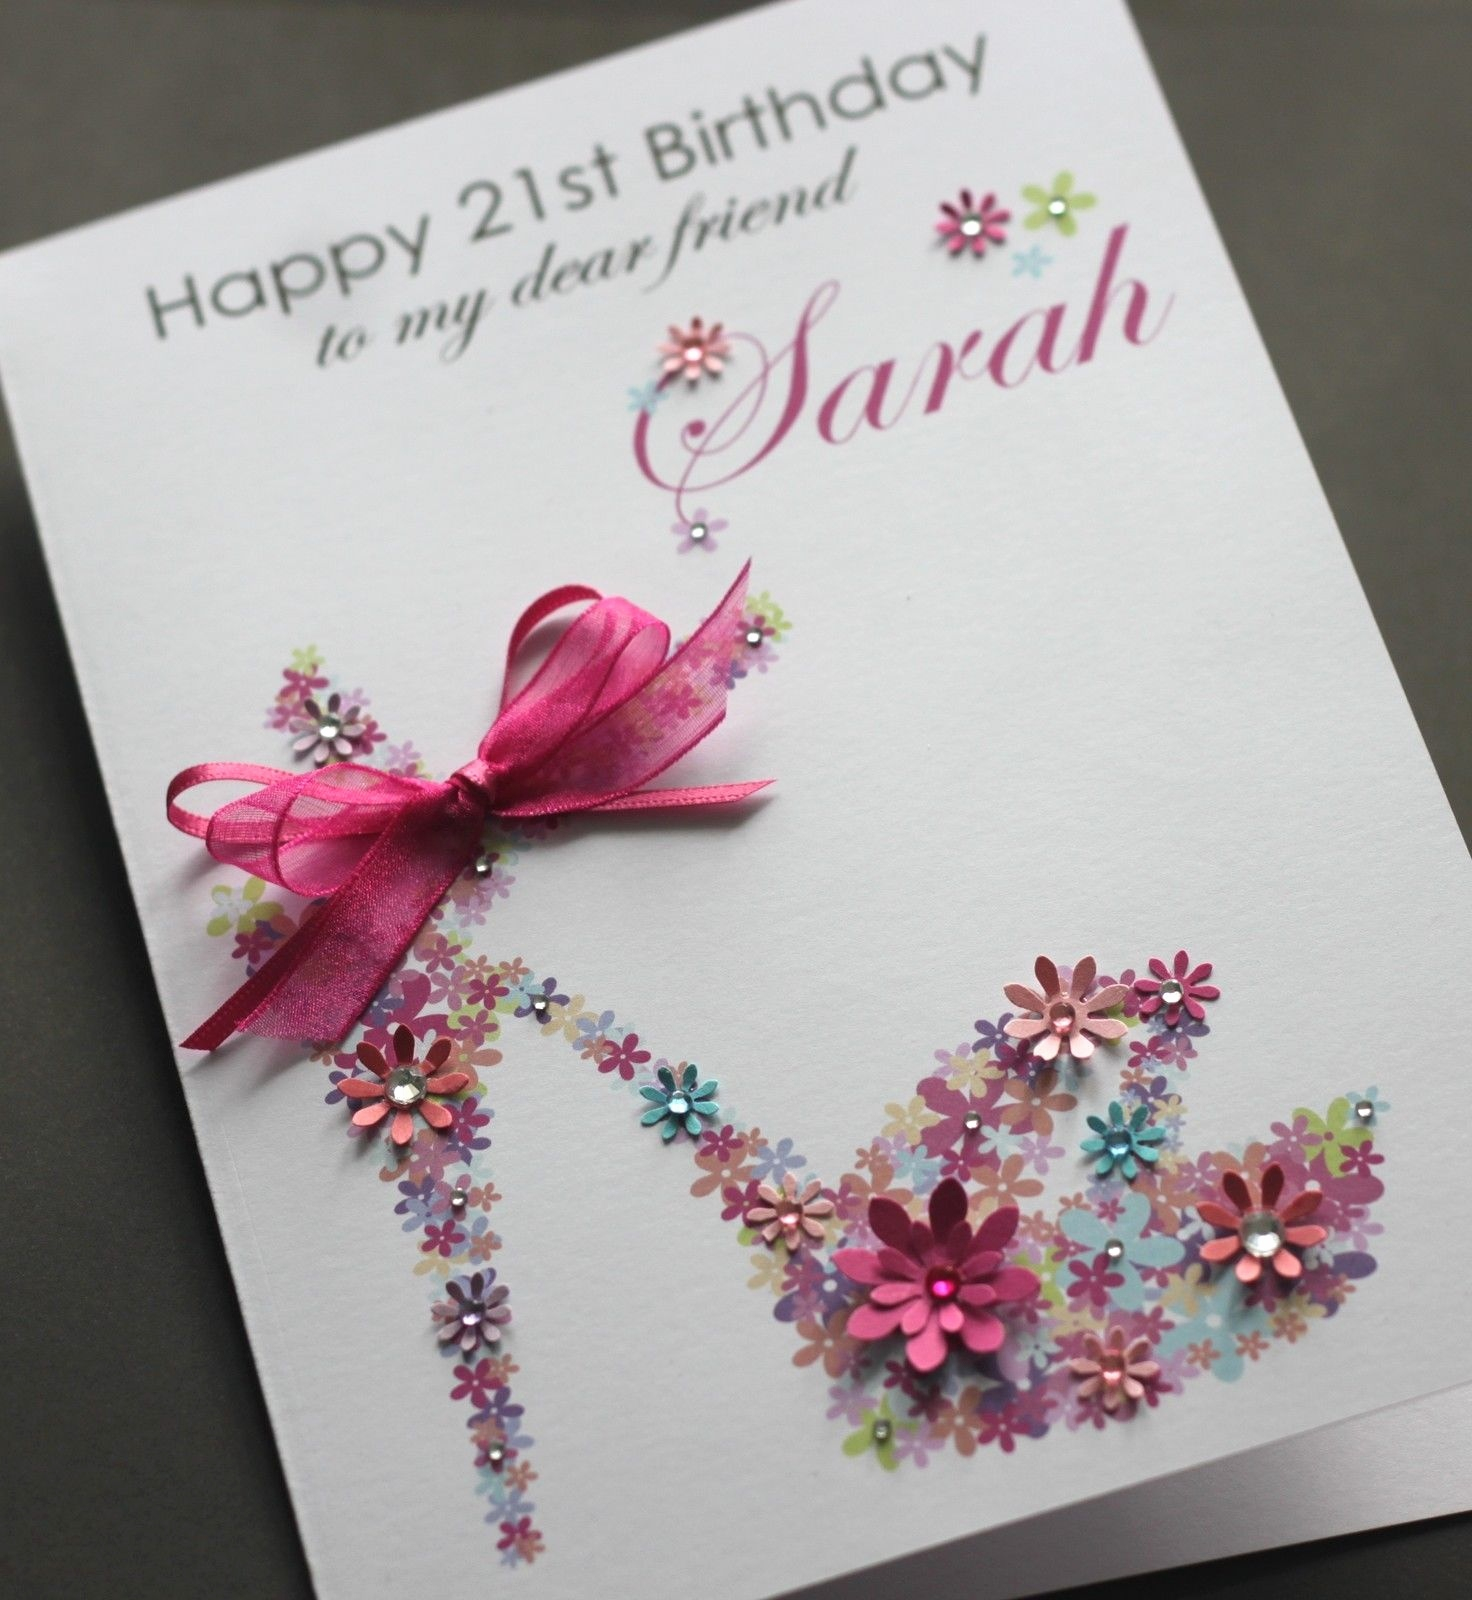 Handmade Birthday Card Ideas For Girlfriend 98 Handmade Birthday Cards For Girlfriend Diy Birthday Cards For